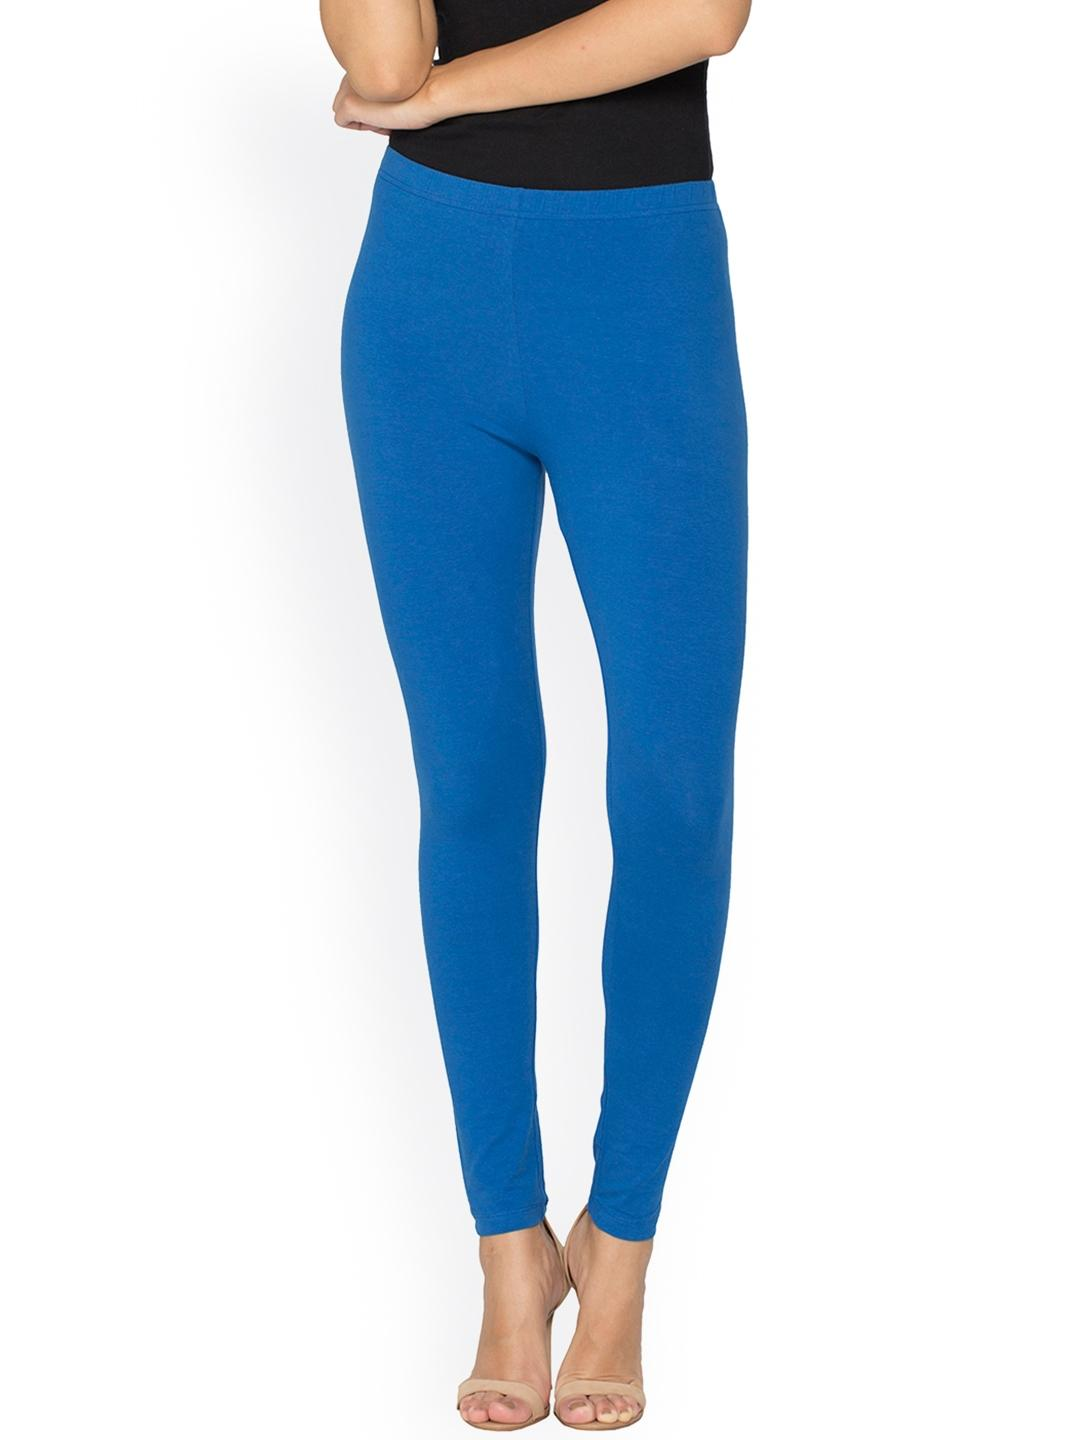 Women's Royal Blue Viscose Comfortable Tights. KTY-T246